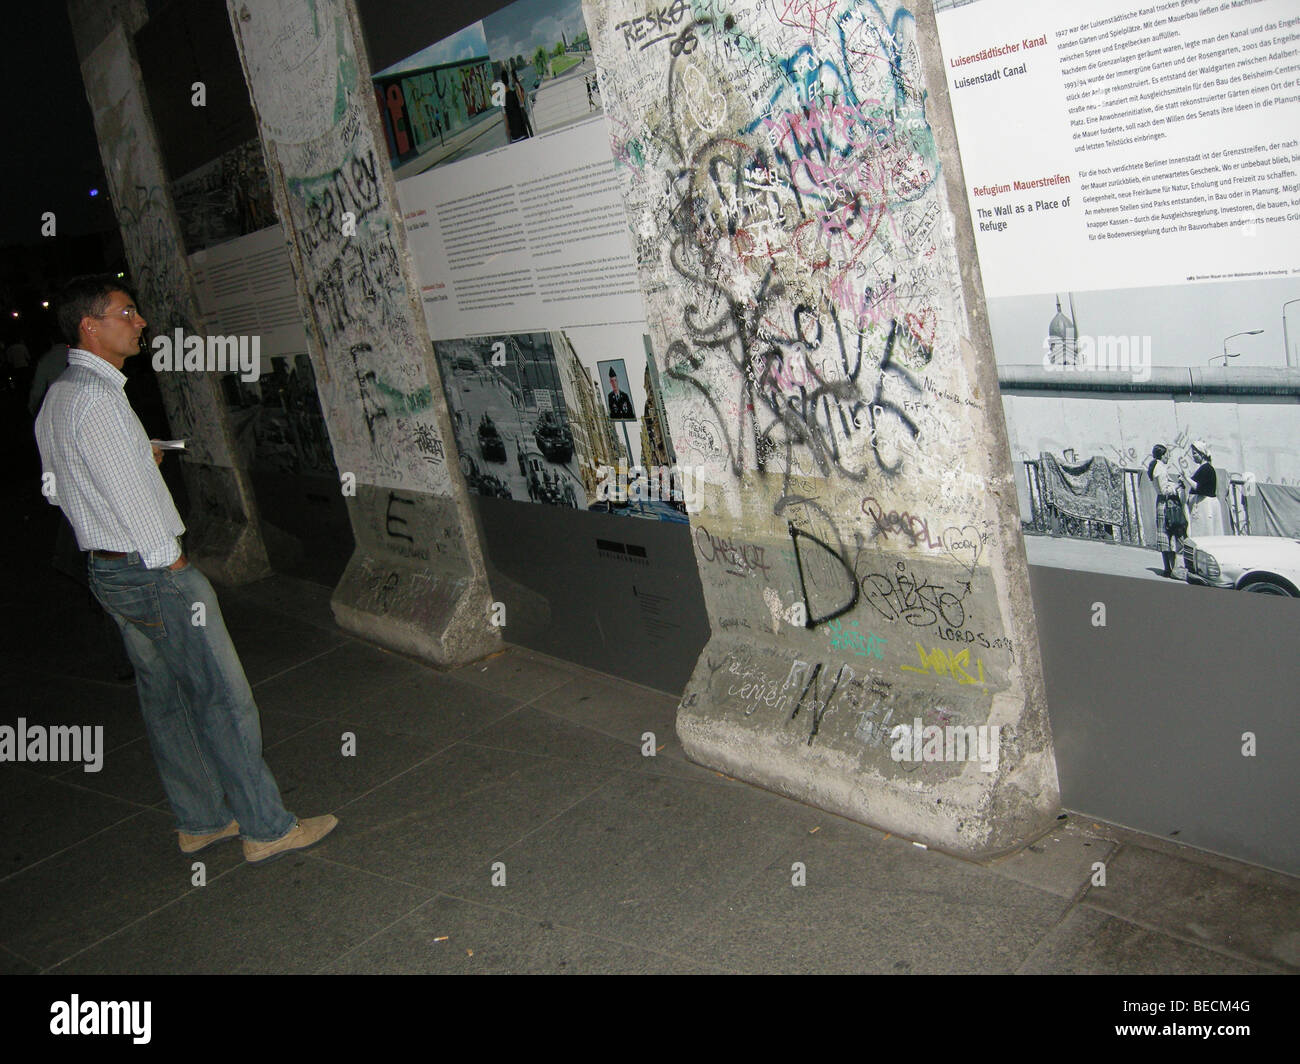 Tourist looks at an exhibition at the Berlin Wall, Potsdamer Platz, Berlin, Germany. - Stock Image